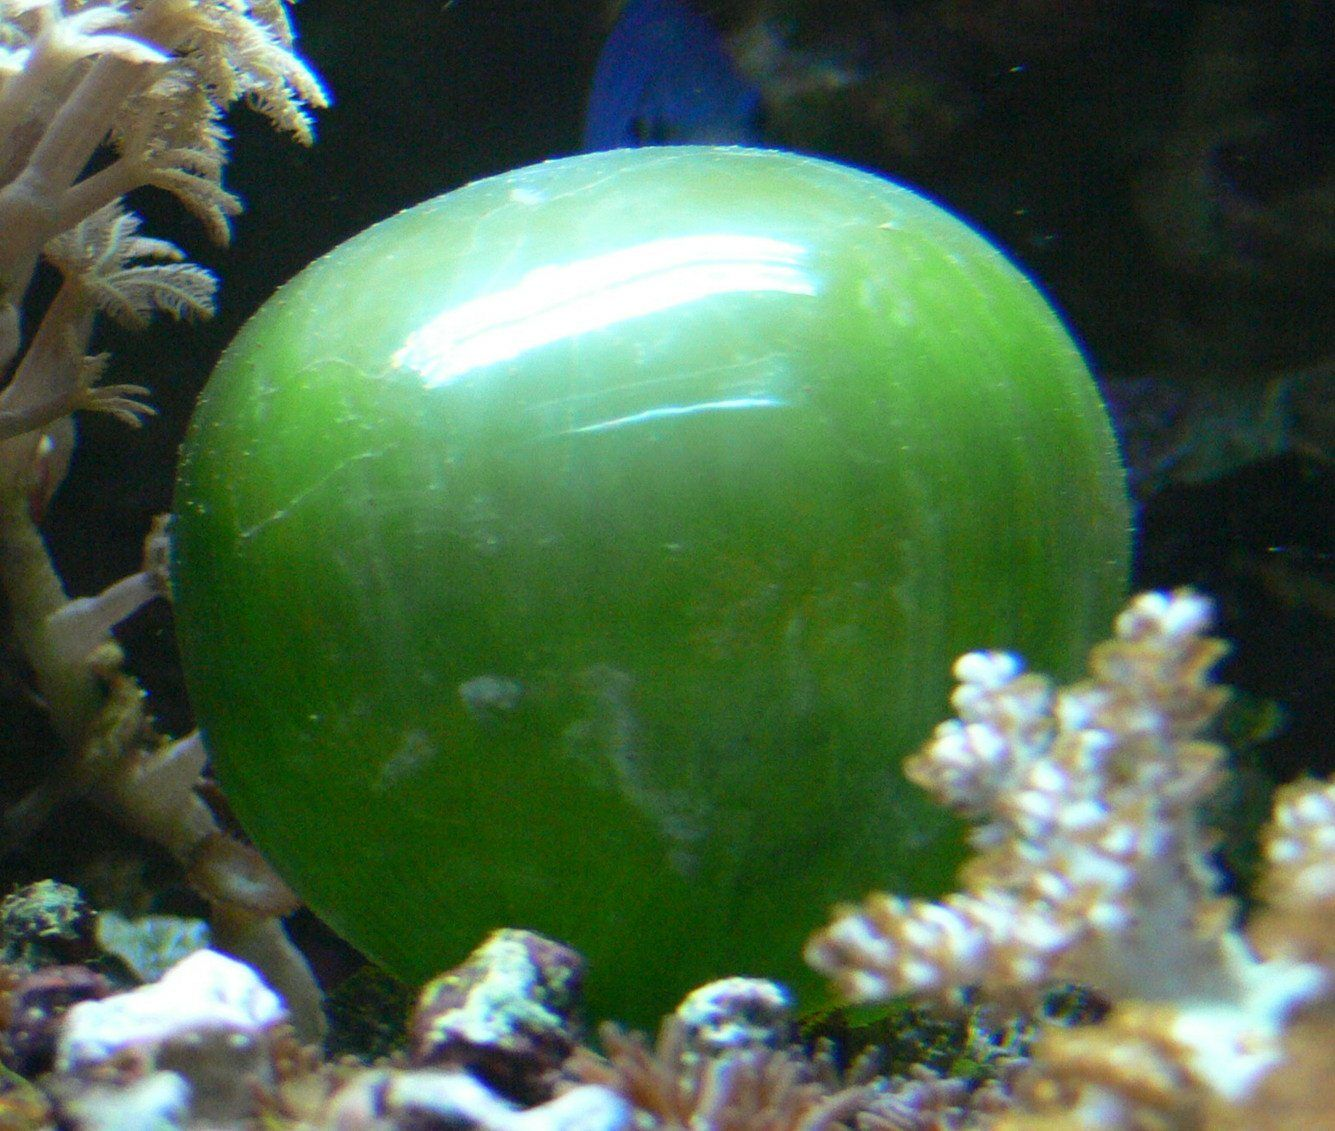 Valonia ventricosa one of the largest unicellular algae